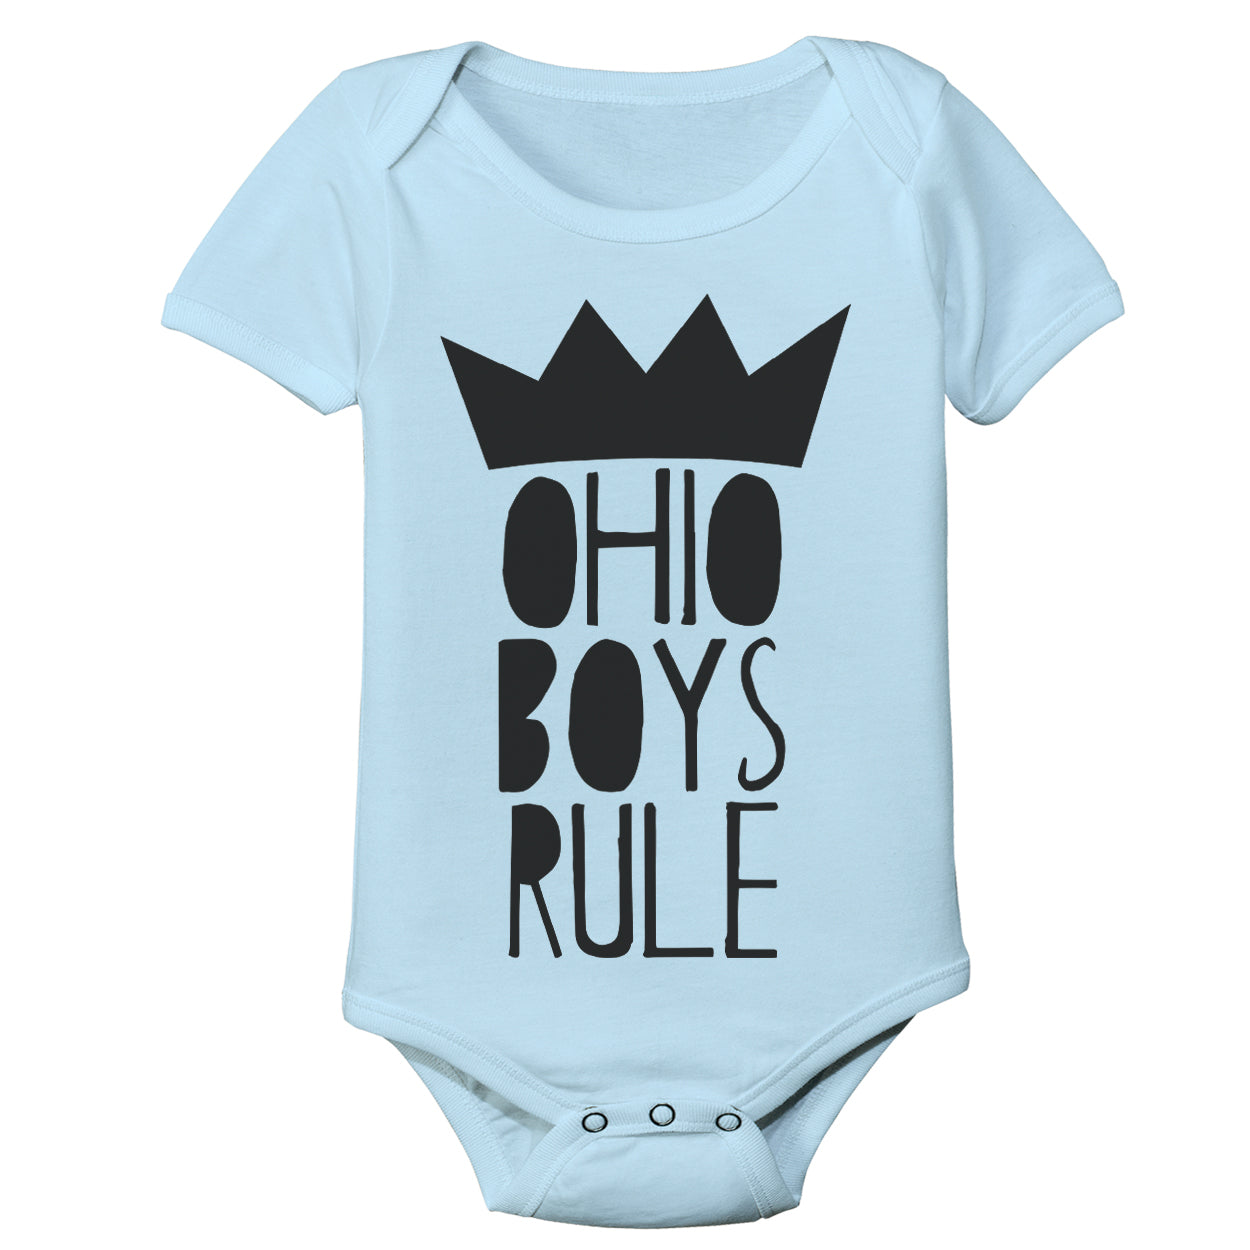 Ohio Boys Rule Baby One Piece - Clothe Ohio - Soft Ohio Shirts